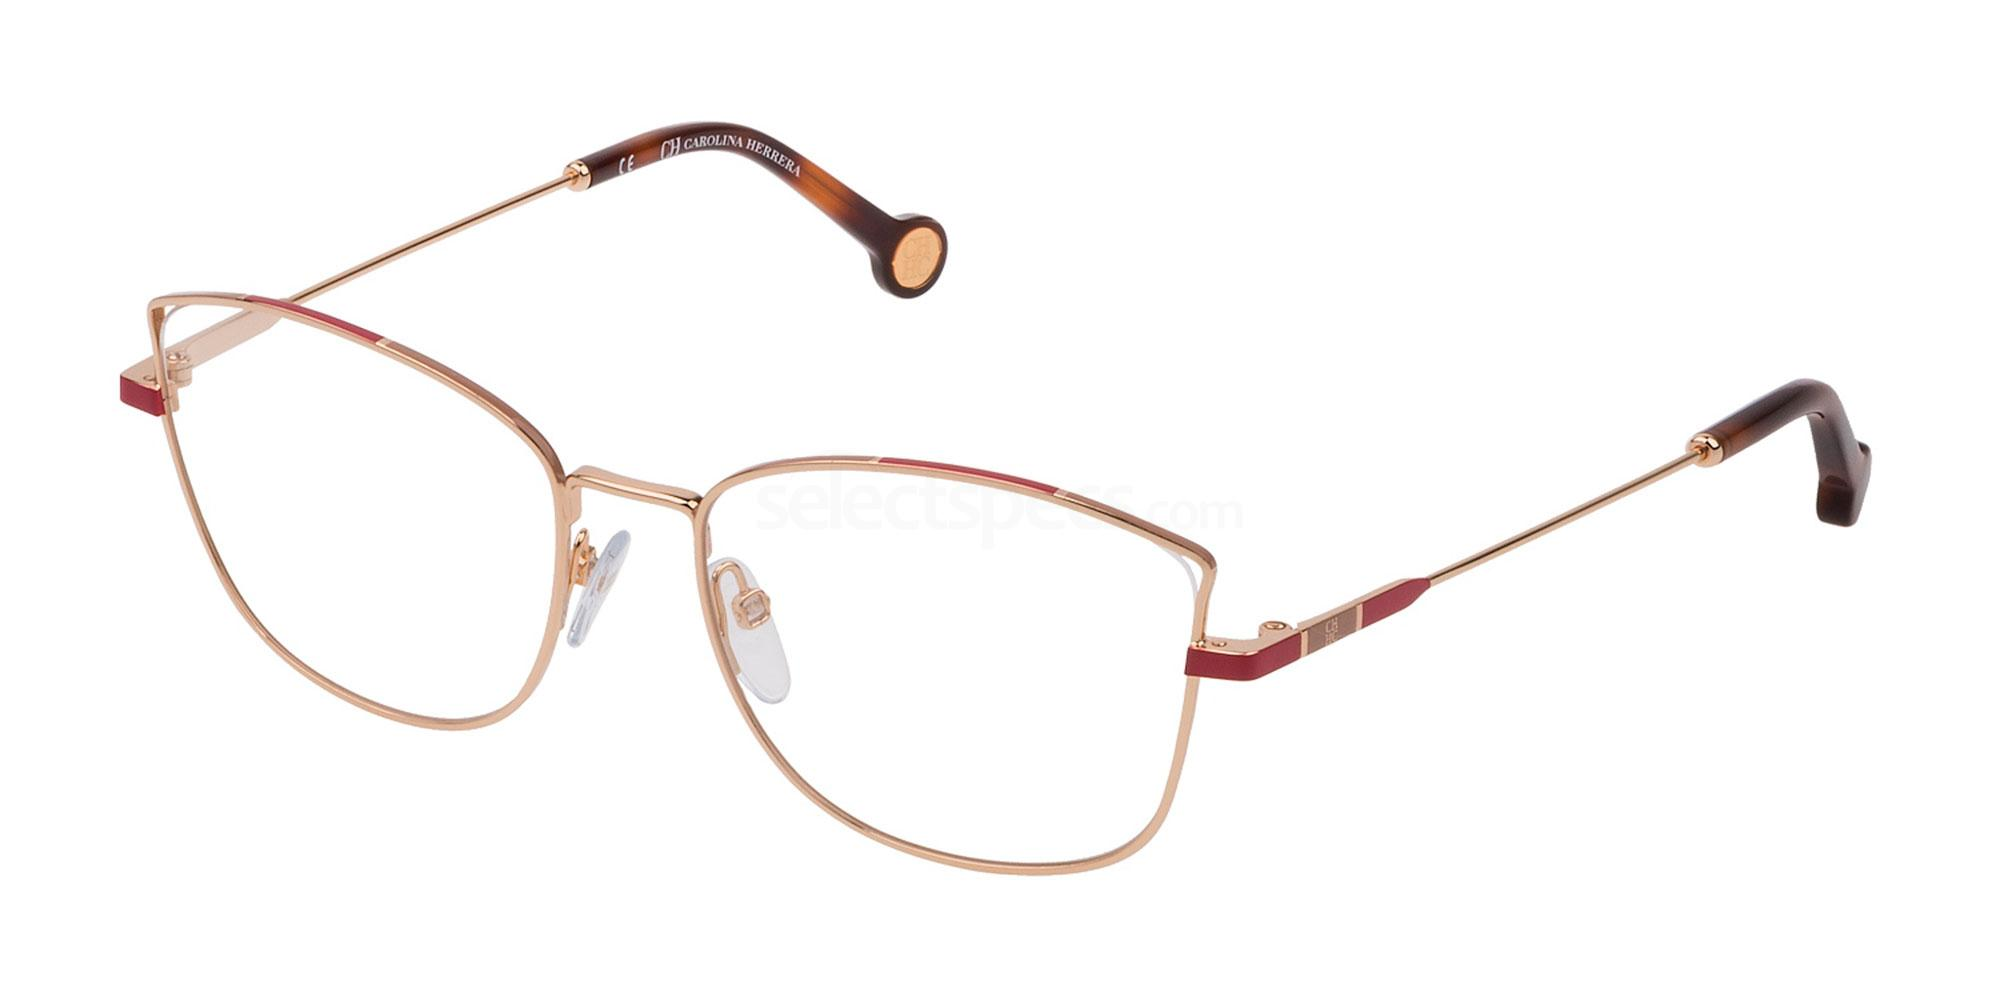 0300 VHE133 Glasses, CH Carolina Herrera